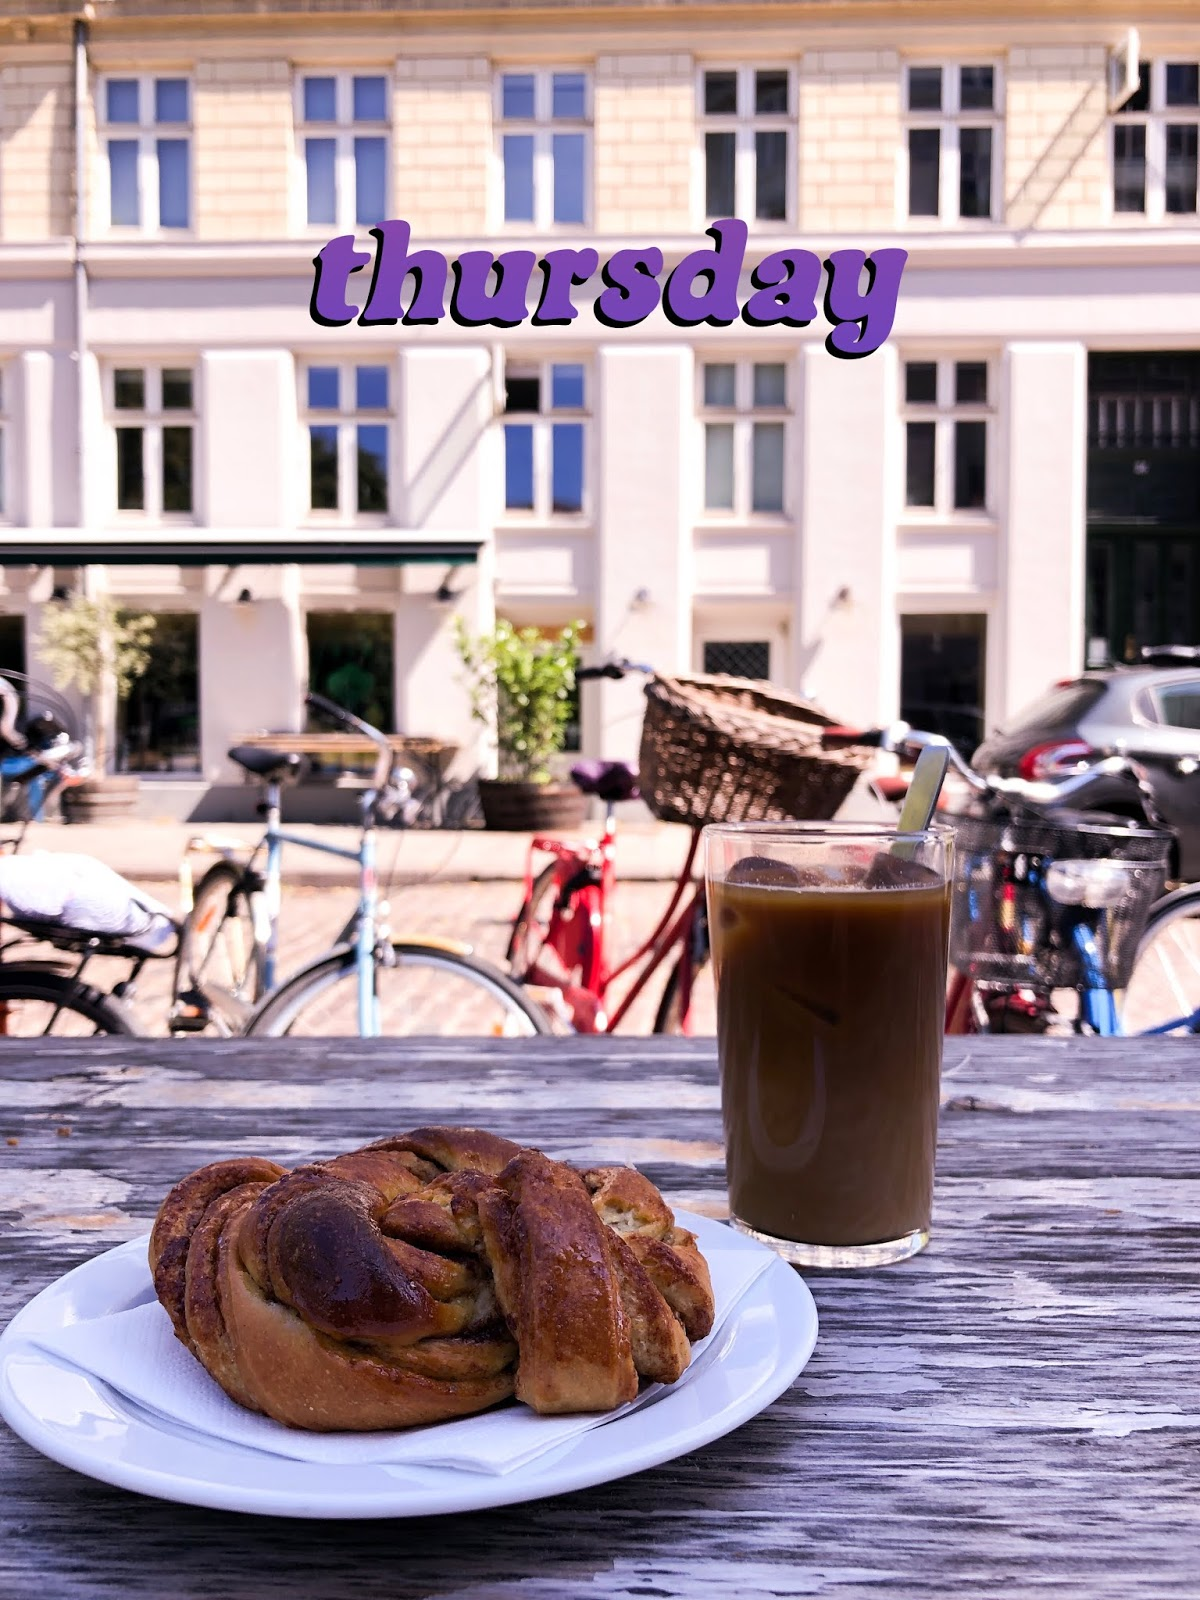 iced latte and cinnamon pastry on table on jaegersborgge street Copenhagen with bikes lined up in background